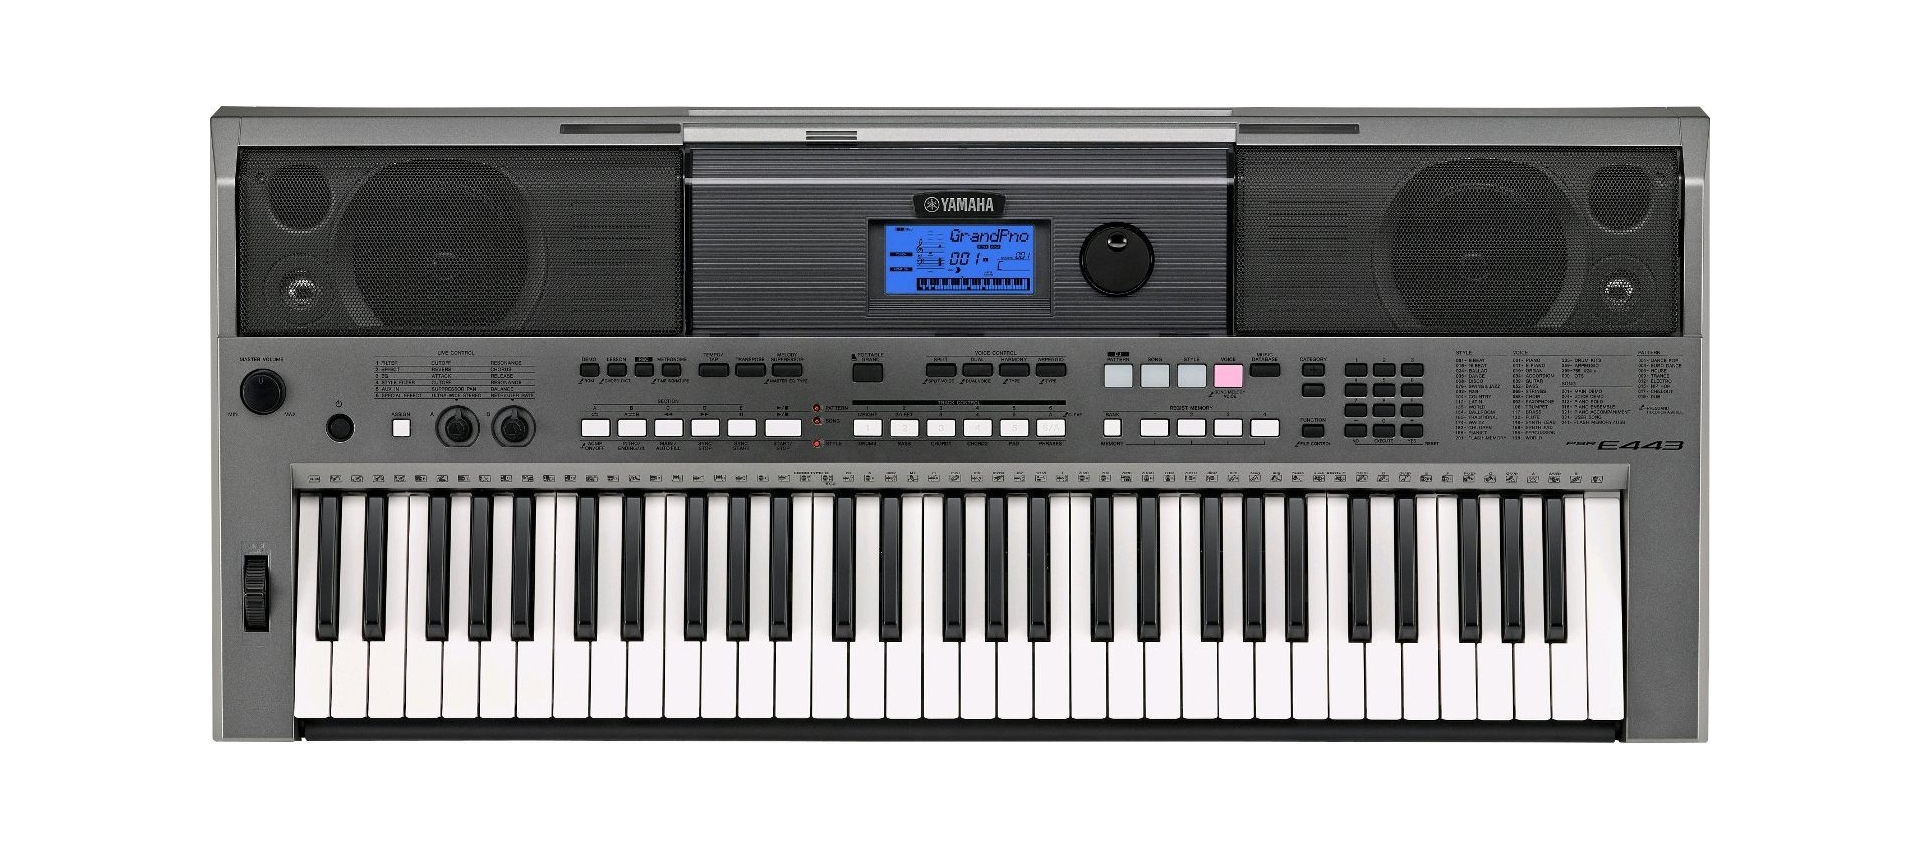 yamaha psr e443 tastiera 61 note con ritmi. Black Bedroom Furniture Sets. Home Design Ideas